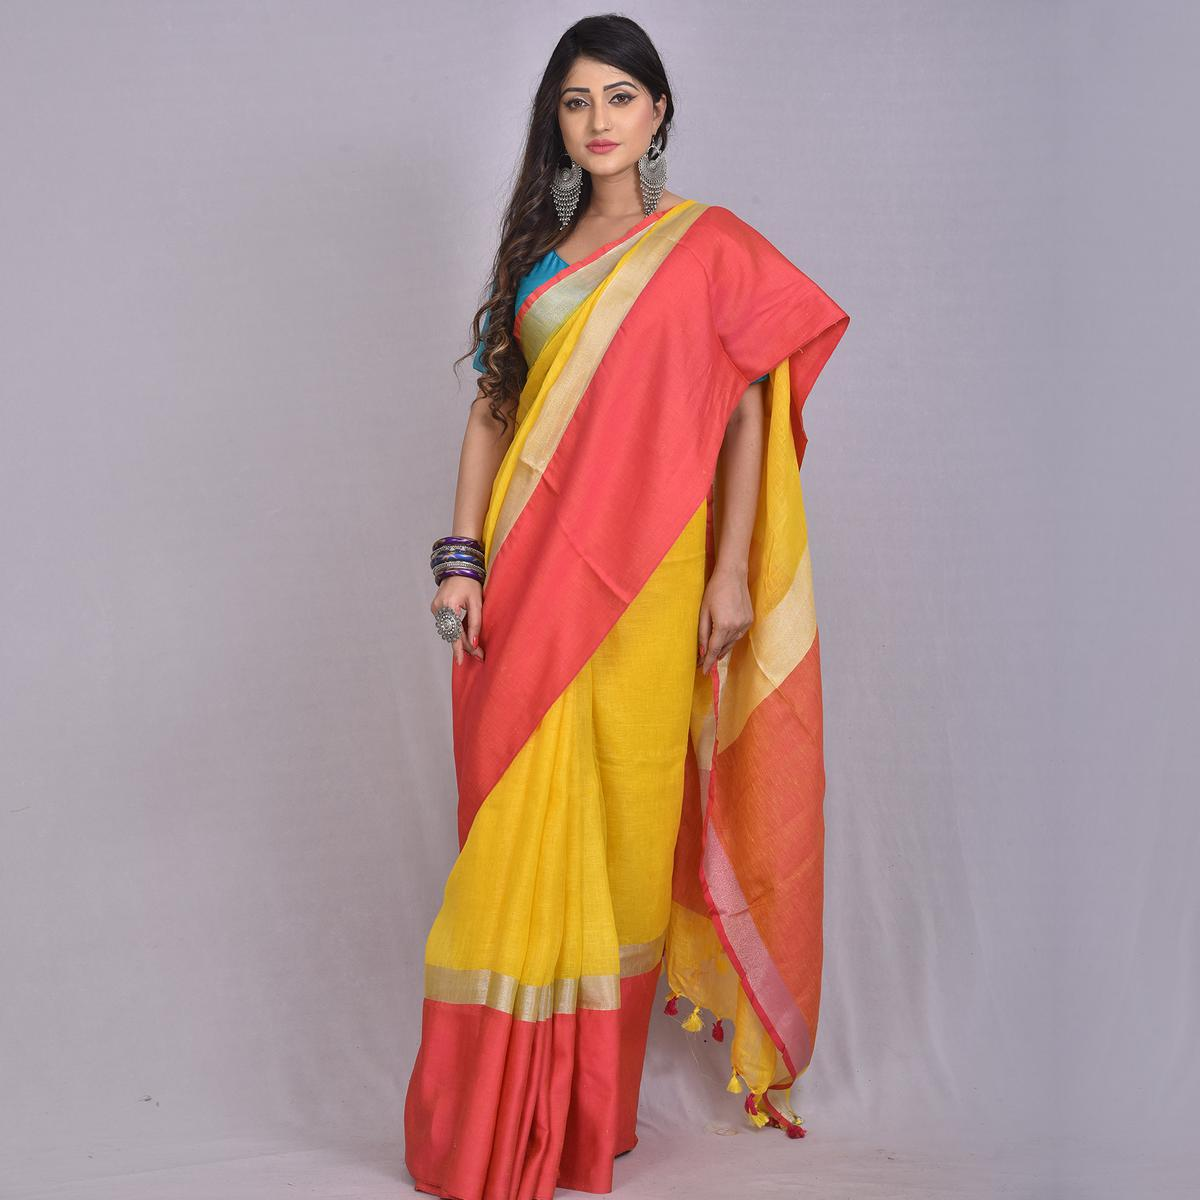 Kihums - Sunny Yellow Hand Woven Linen Saree With Blouse Piece